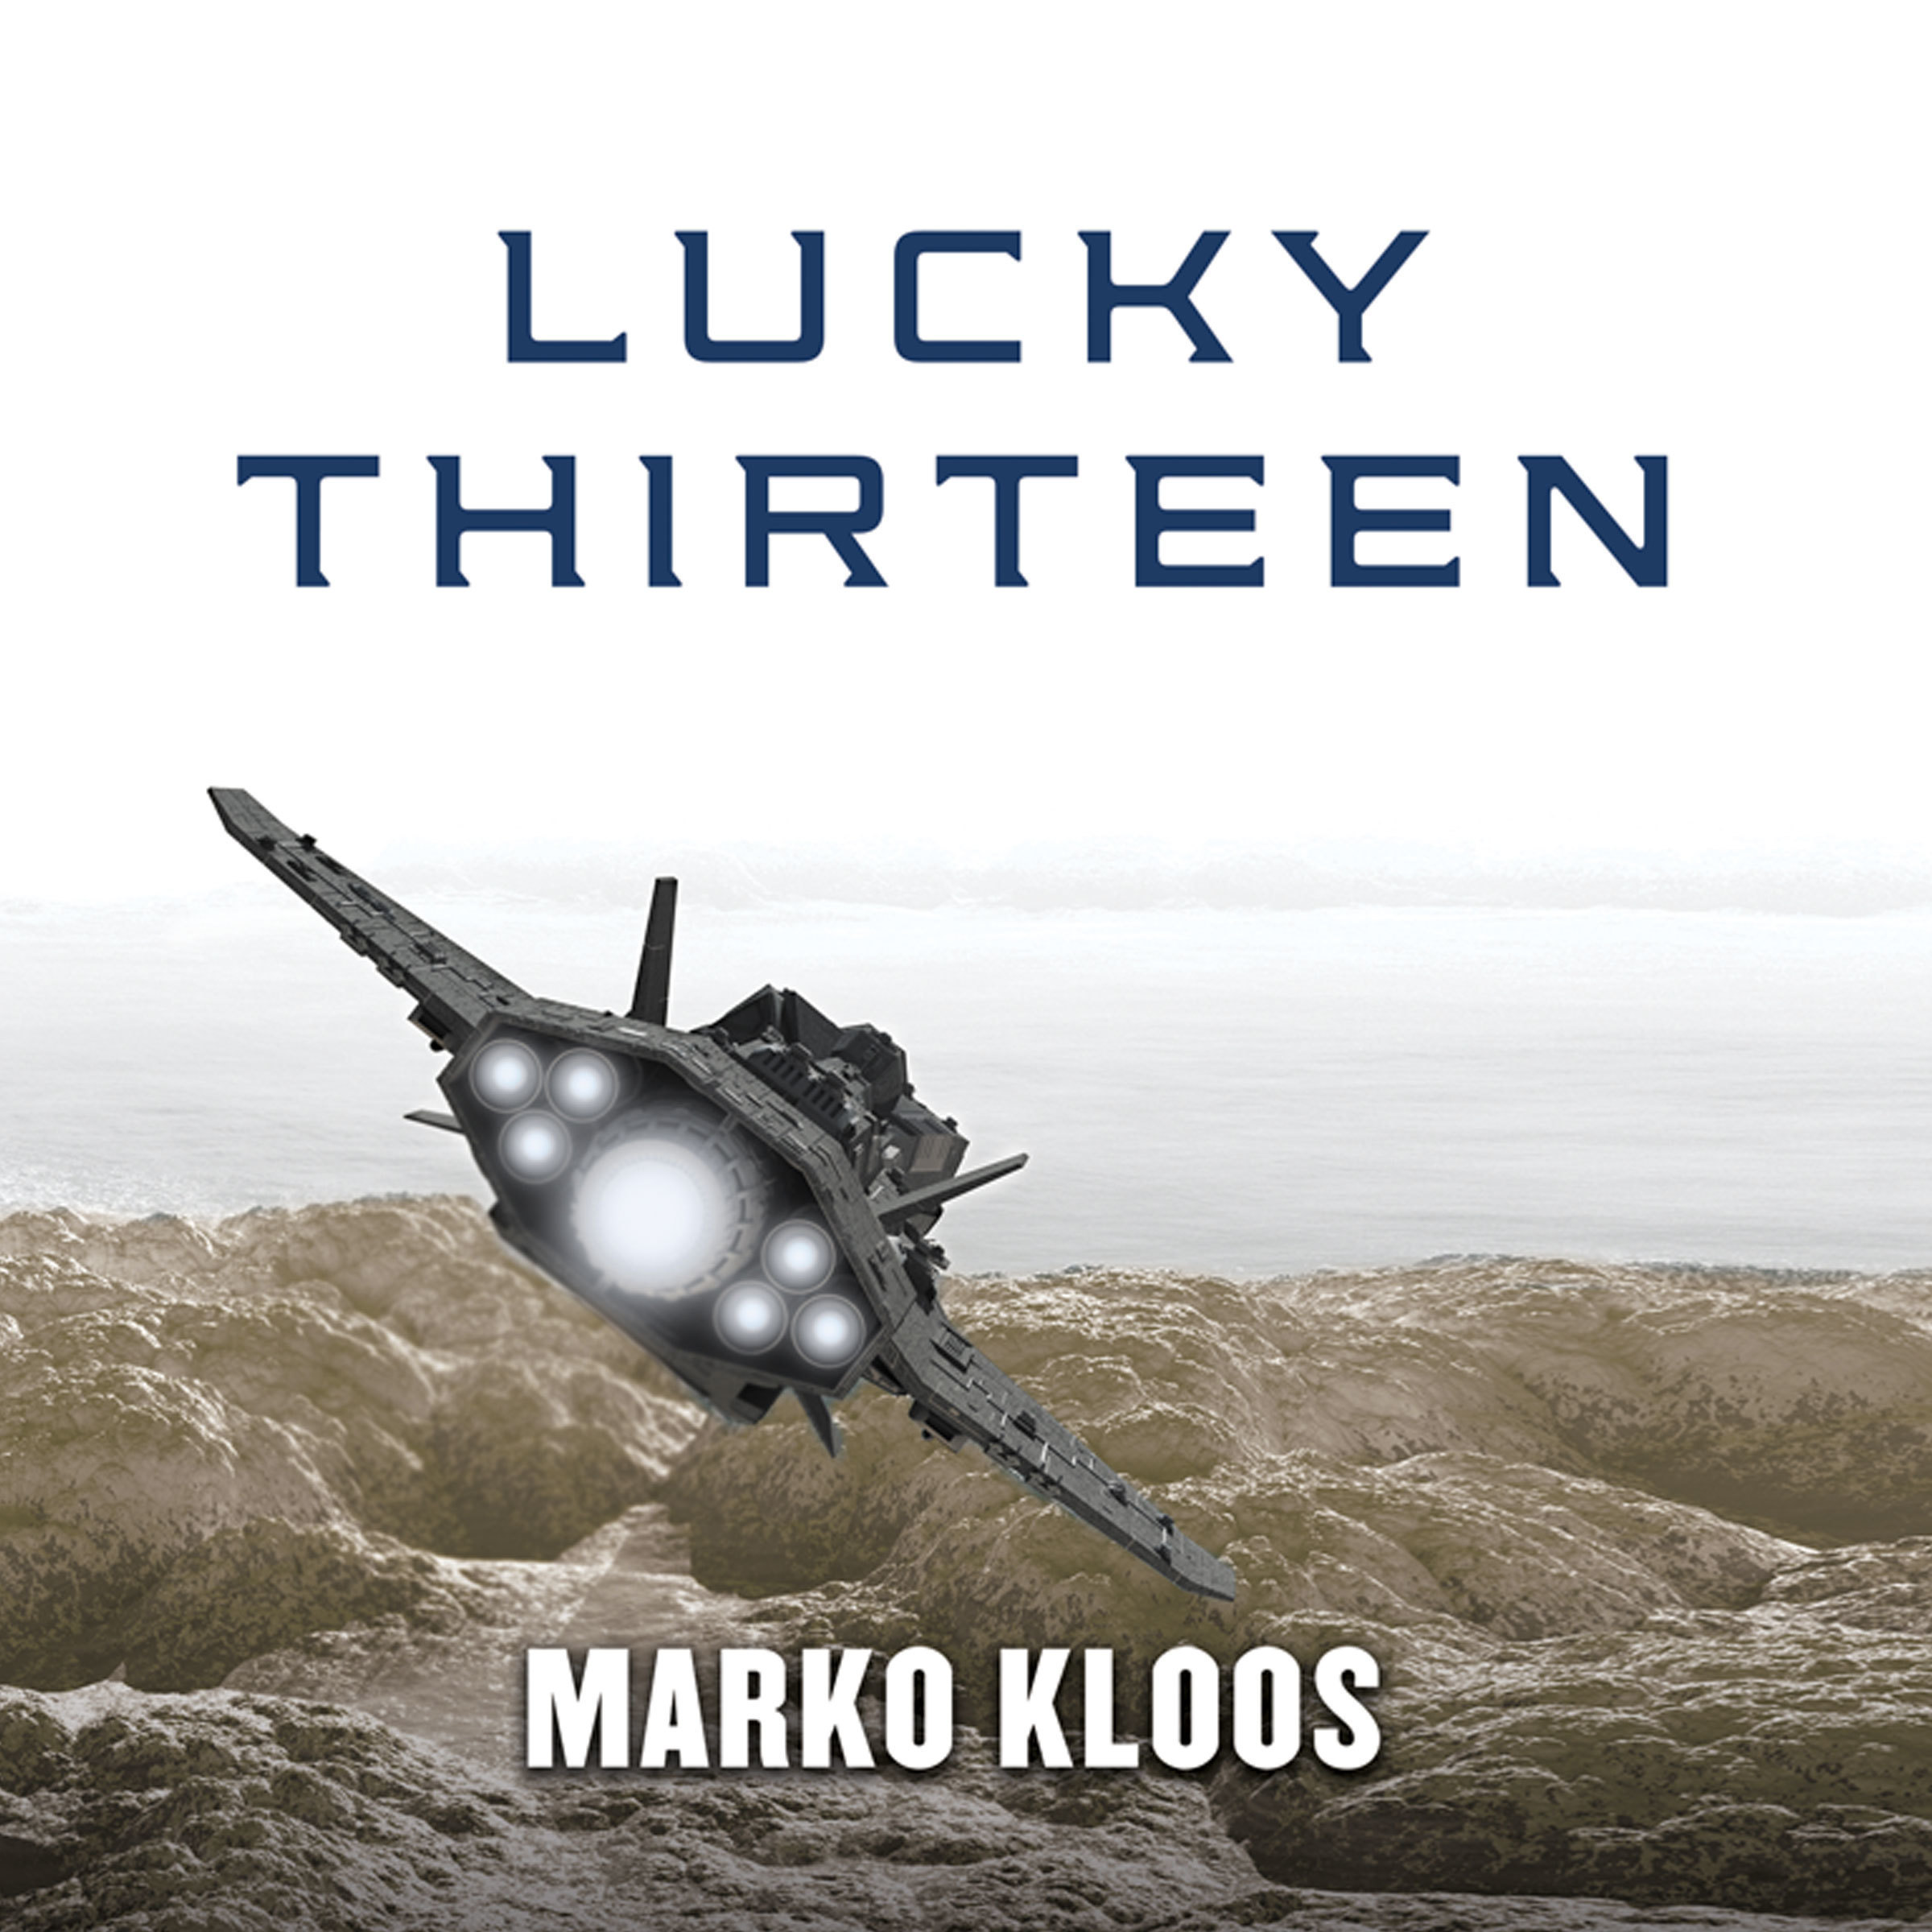 Printable Lucky Thirteen Audiobook Cover Art